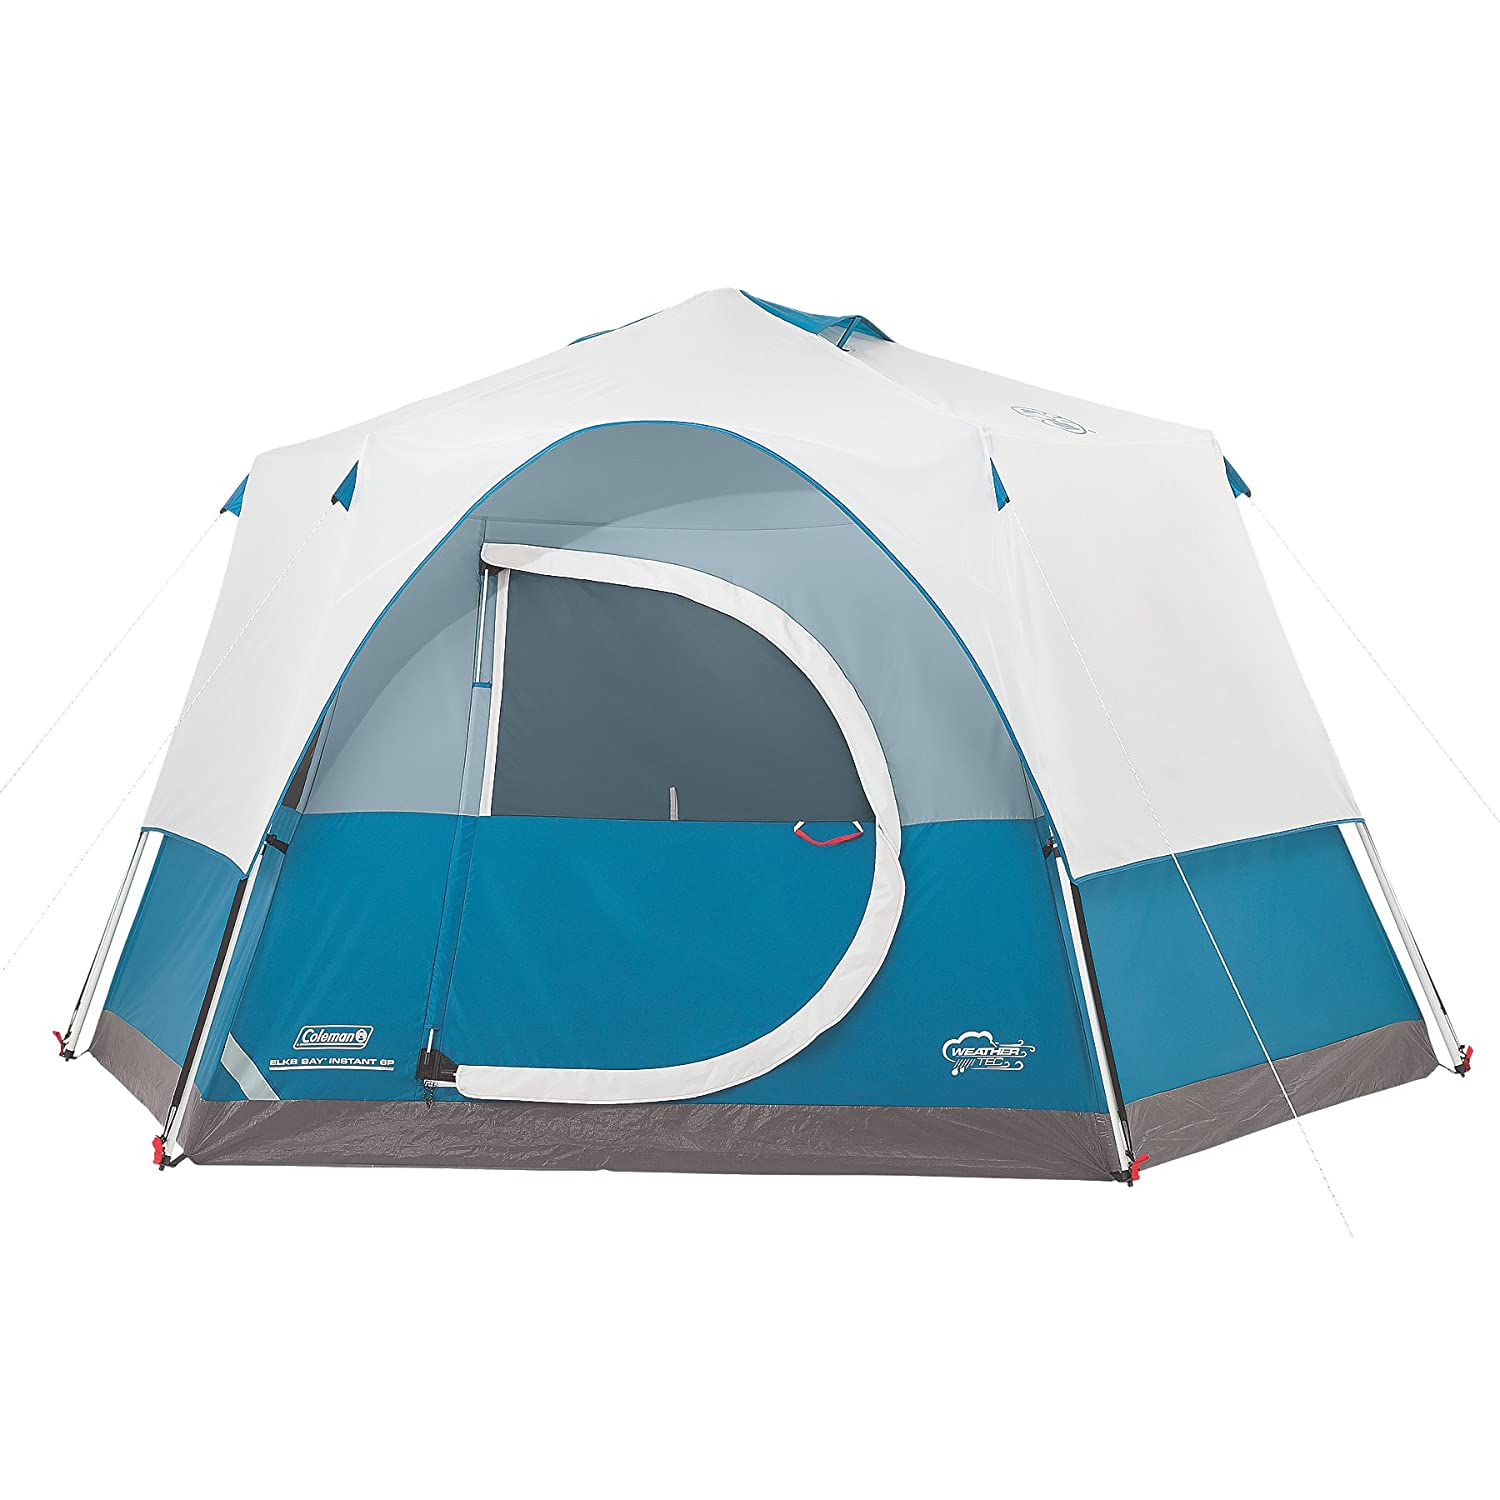 sc 1 st  Amazon.ca & Coleman Elks Bay 8-Person Instant Tent: Amazon.ca: Sports u0026 Outdoors